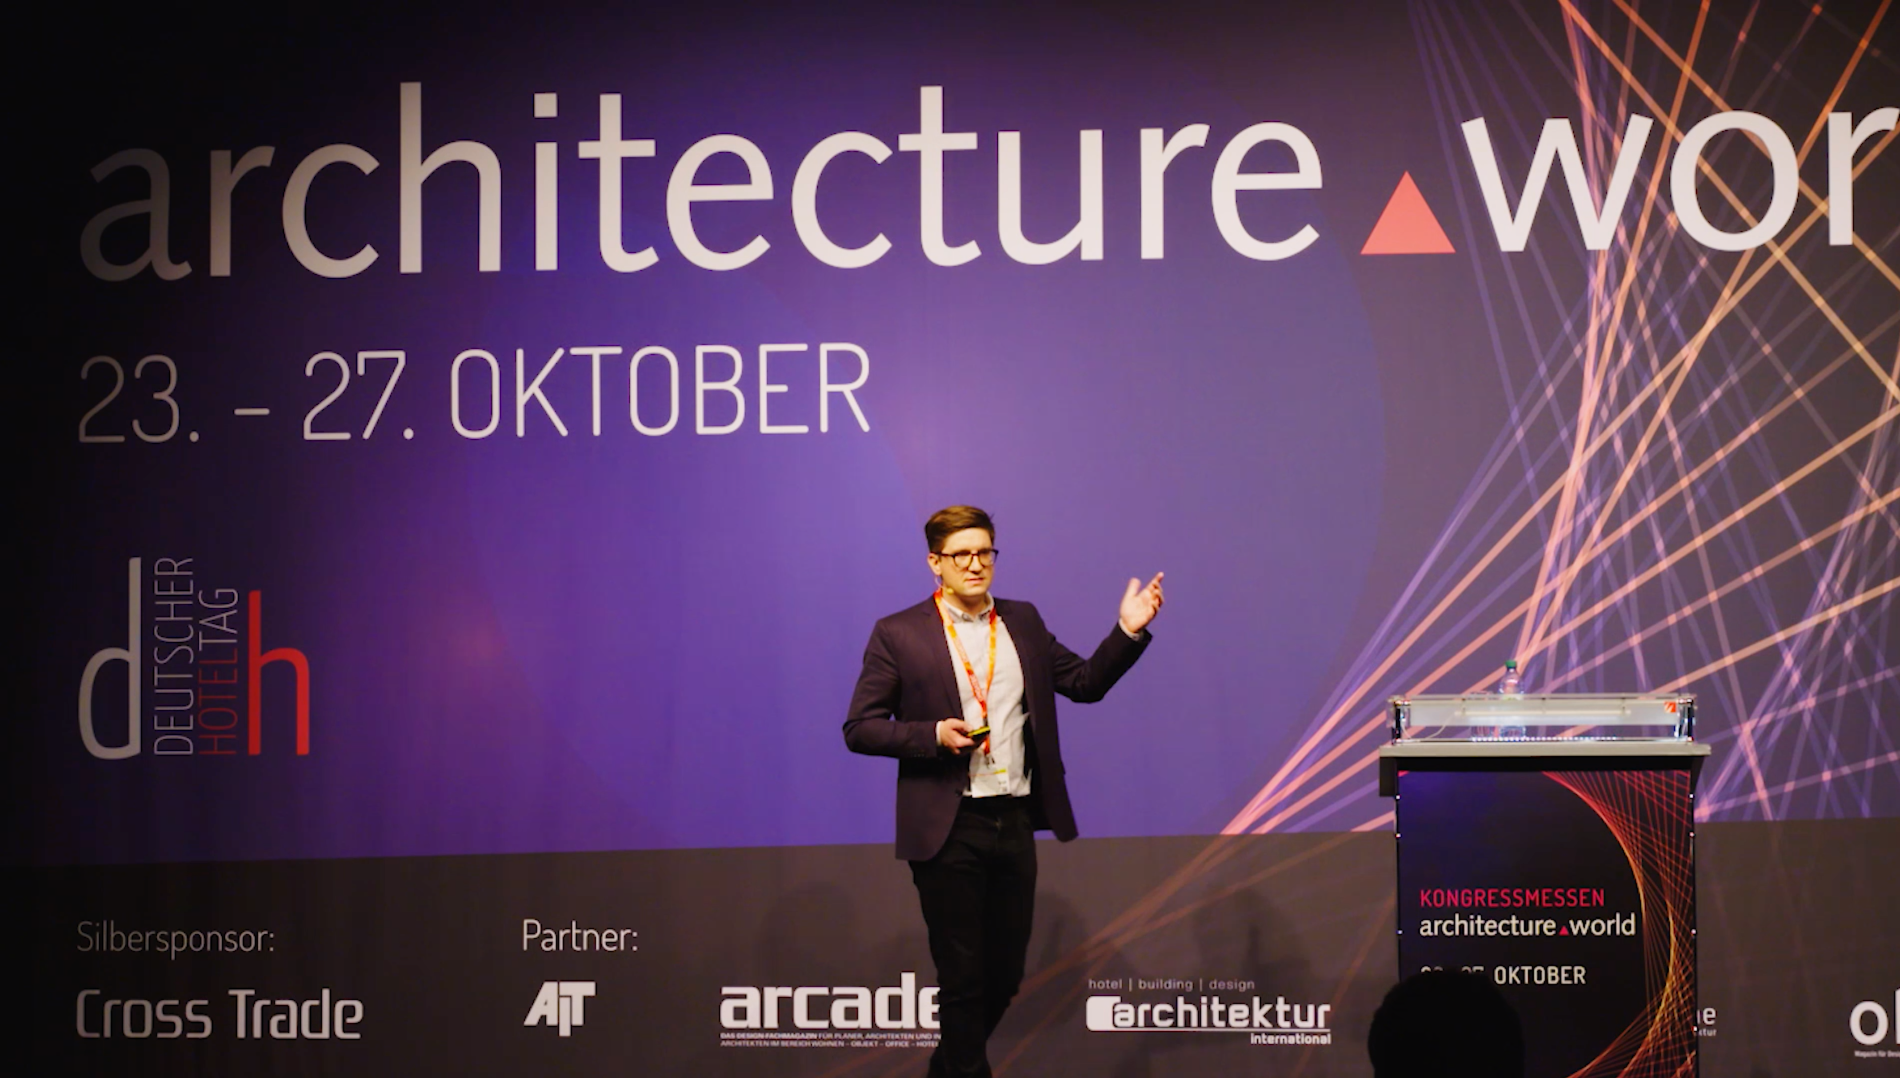 Sebastian_Brunner_Orgatec_architecture_world_vortrag_speaker.png